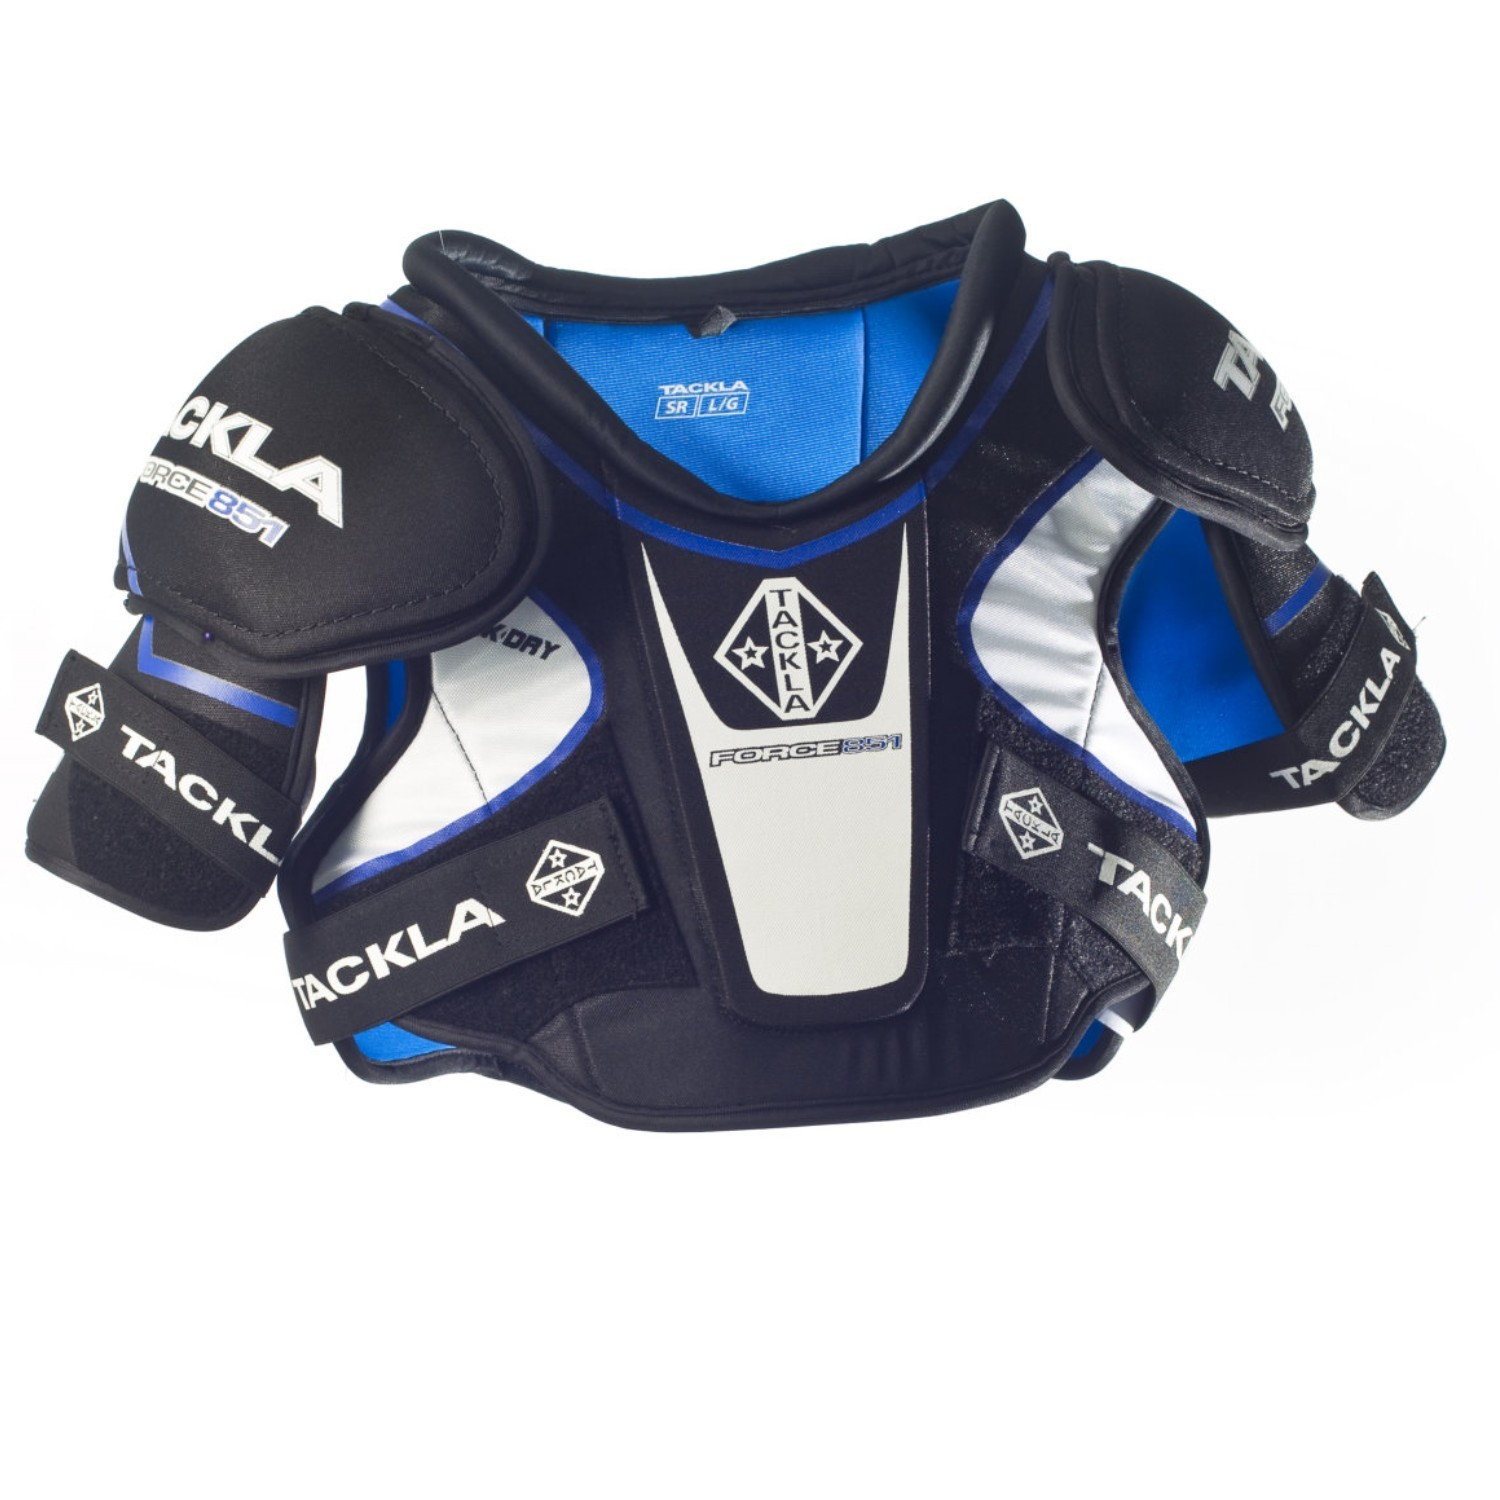 TACKLA Force 851 Youth Shoulder Pads